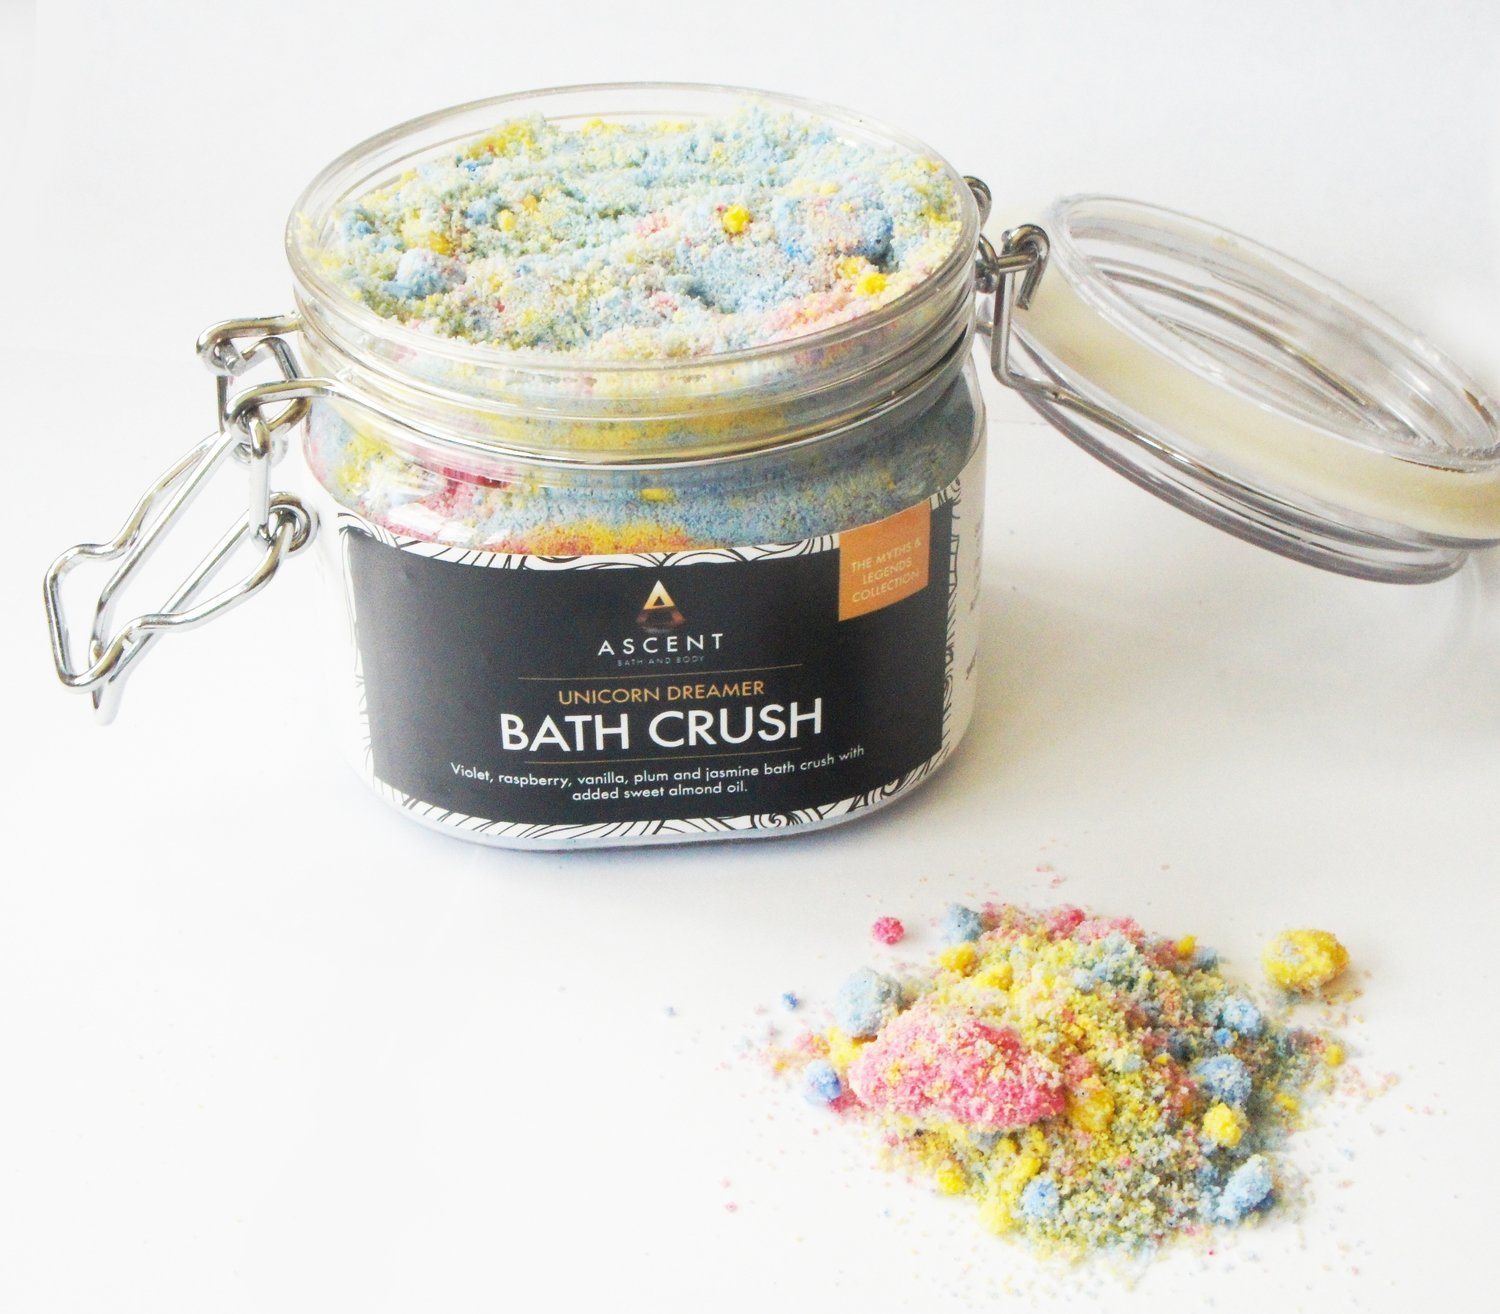 Unicorn Dreamer Bath Crush